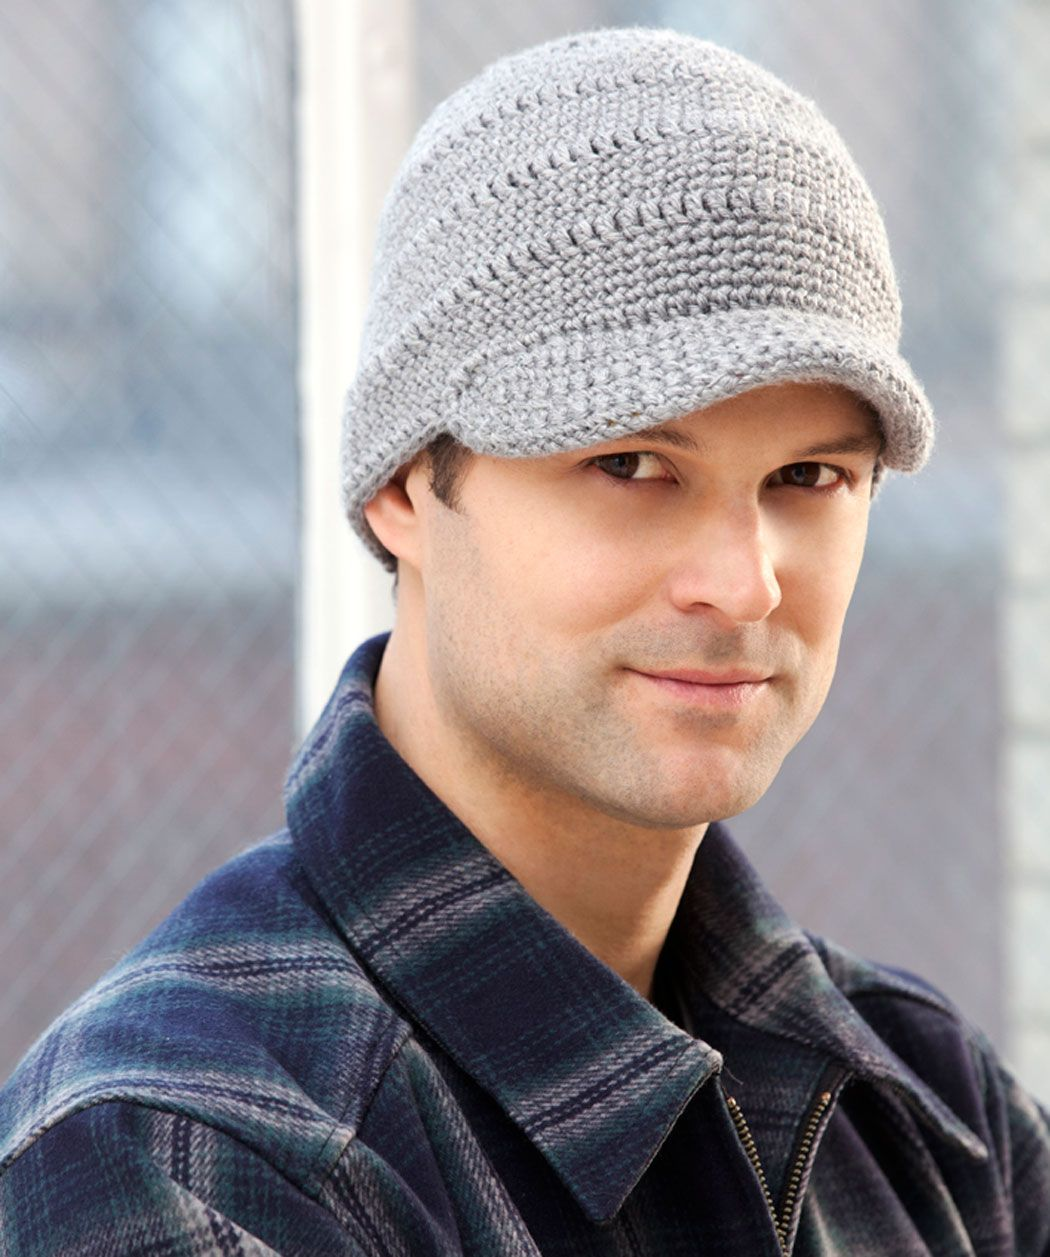 Knit Brim Hat Pattern : Streetwise Brim Hat - Im interested in this brim which has interfacing o...